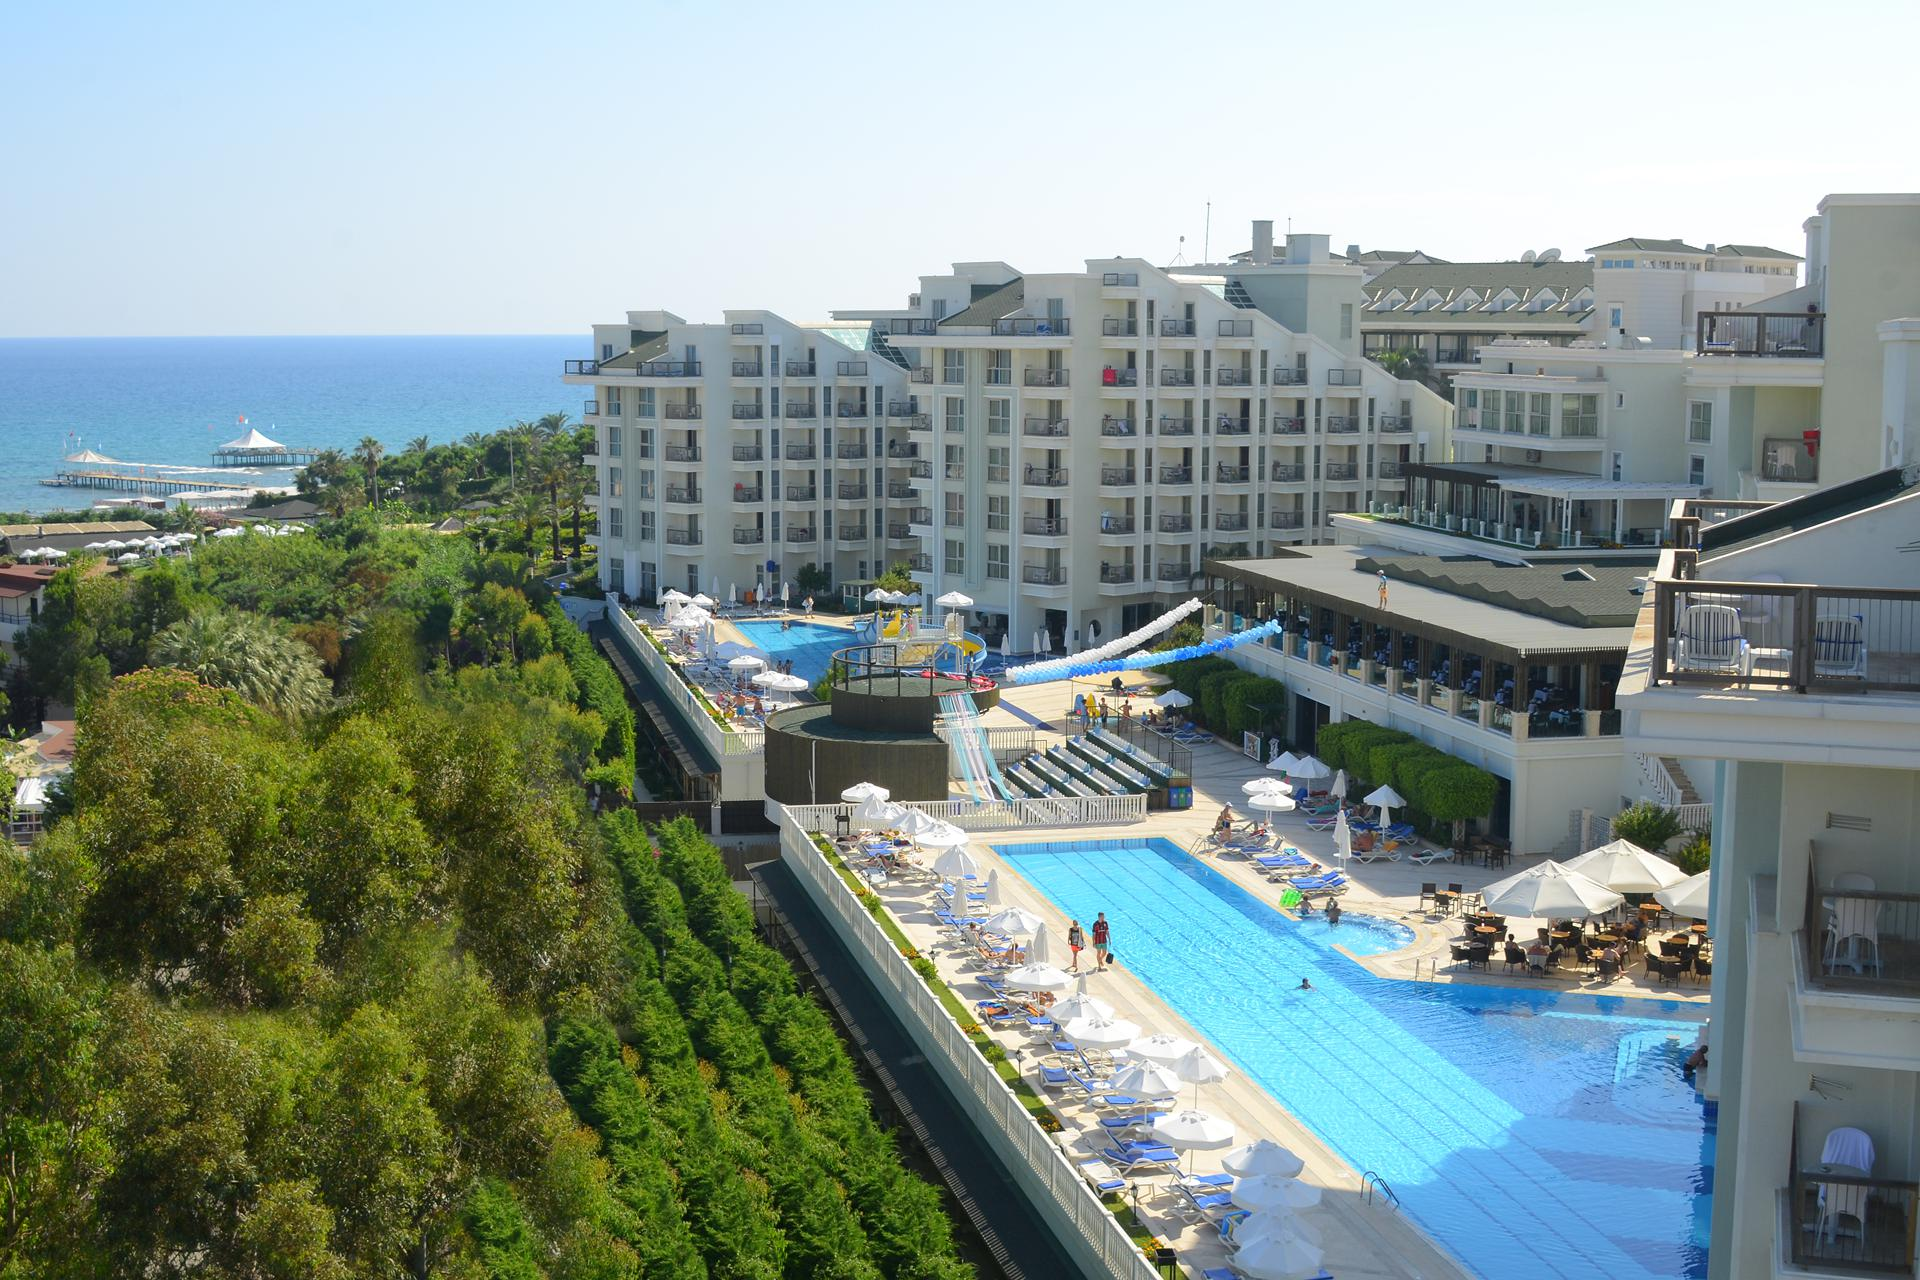 Hotel Royal Atlantis Spa Amp Resort T 252 Rkische Riviera